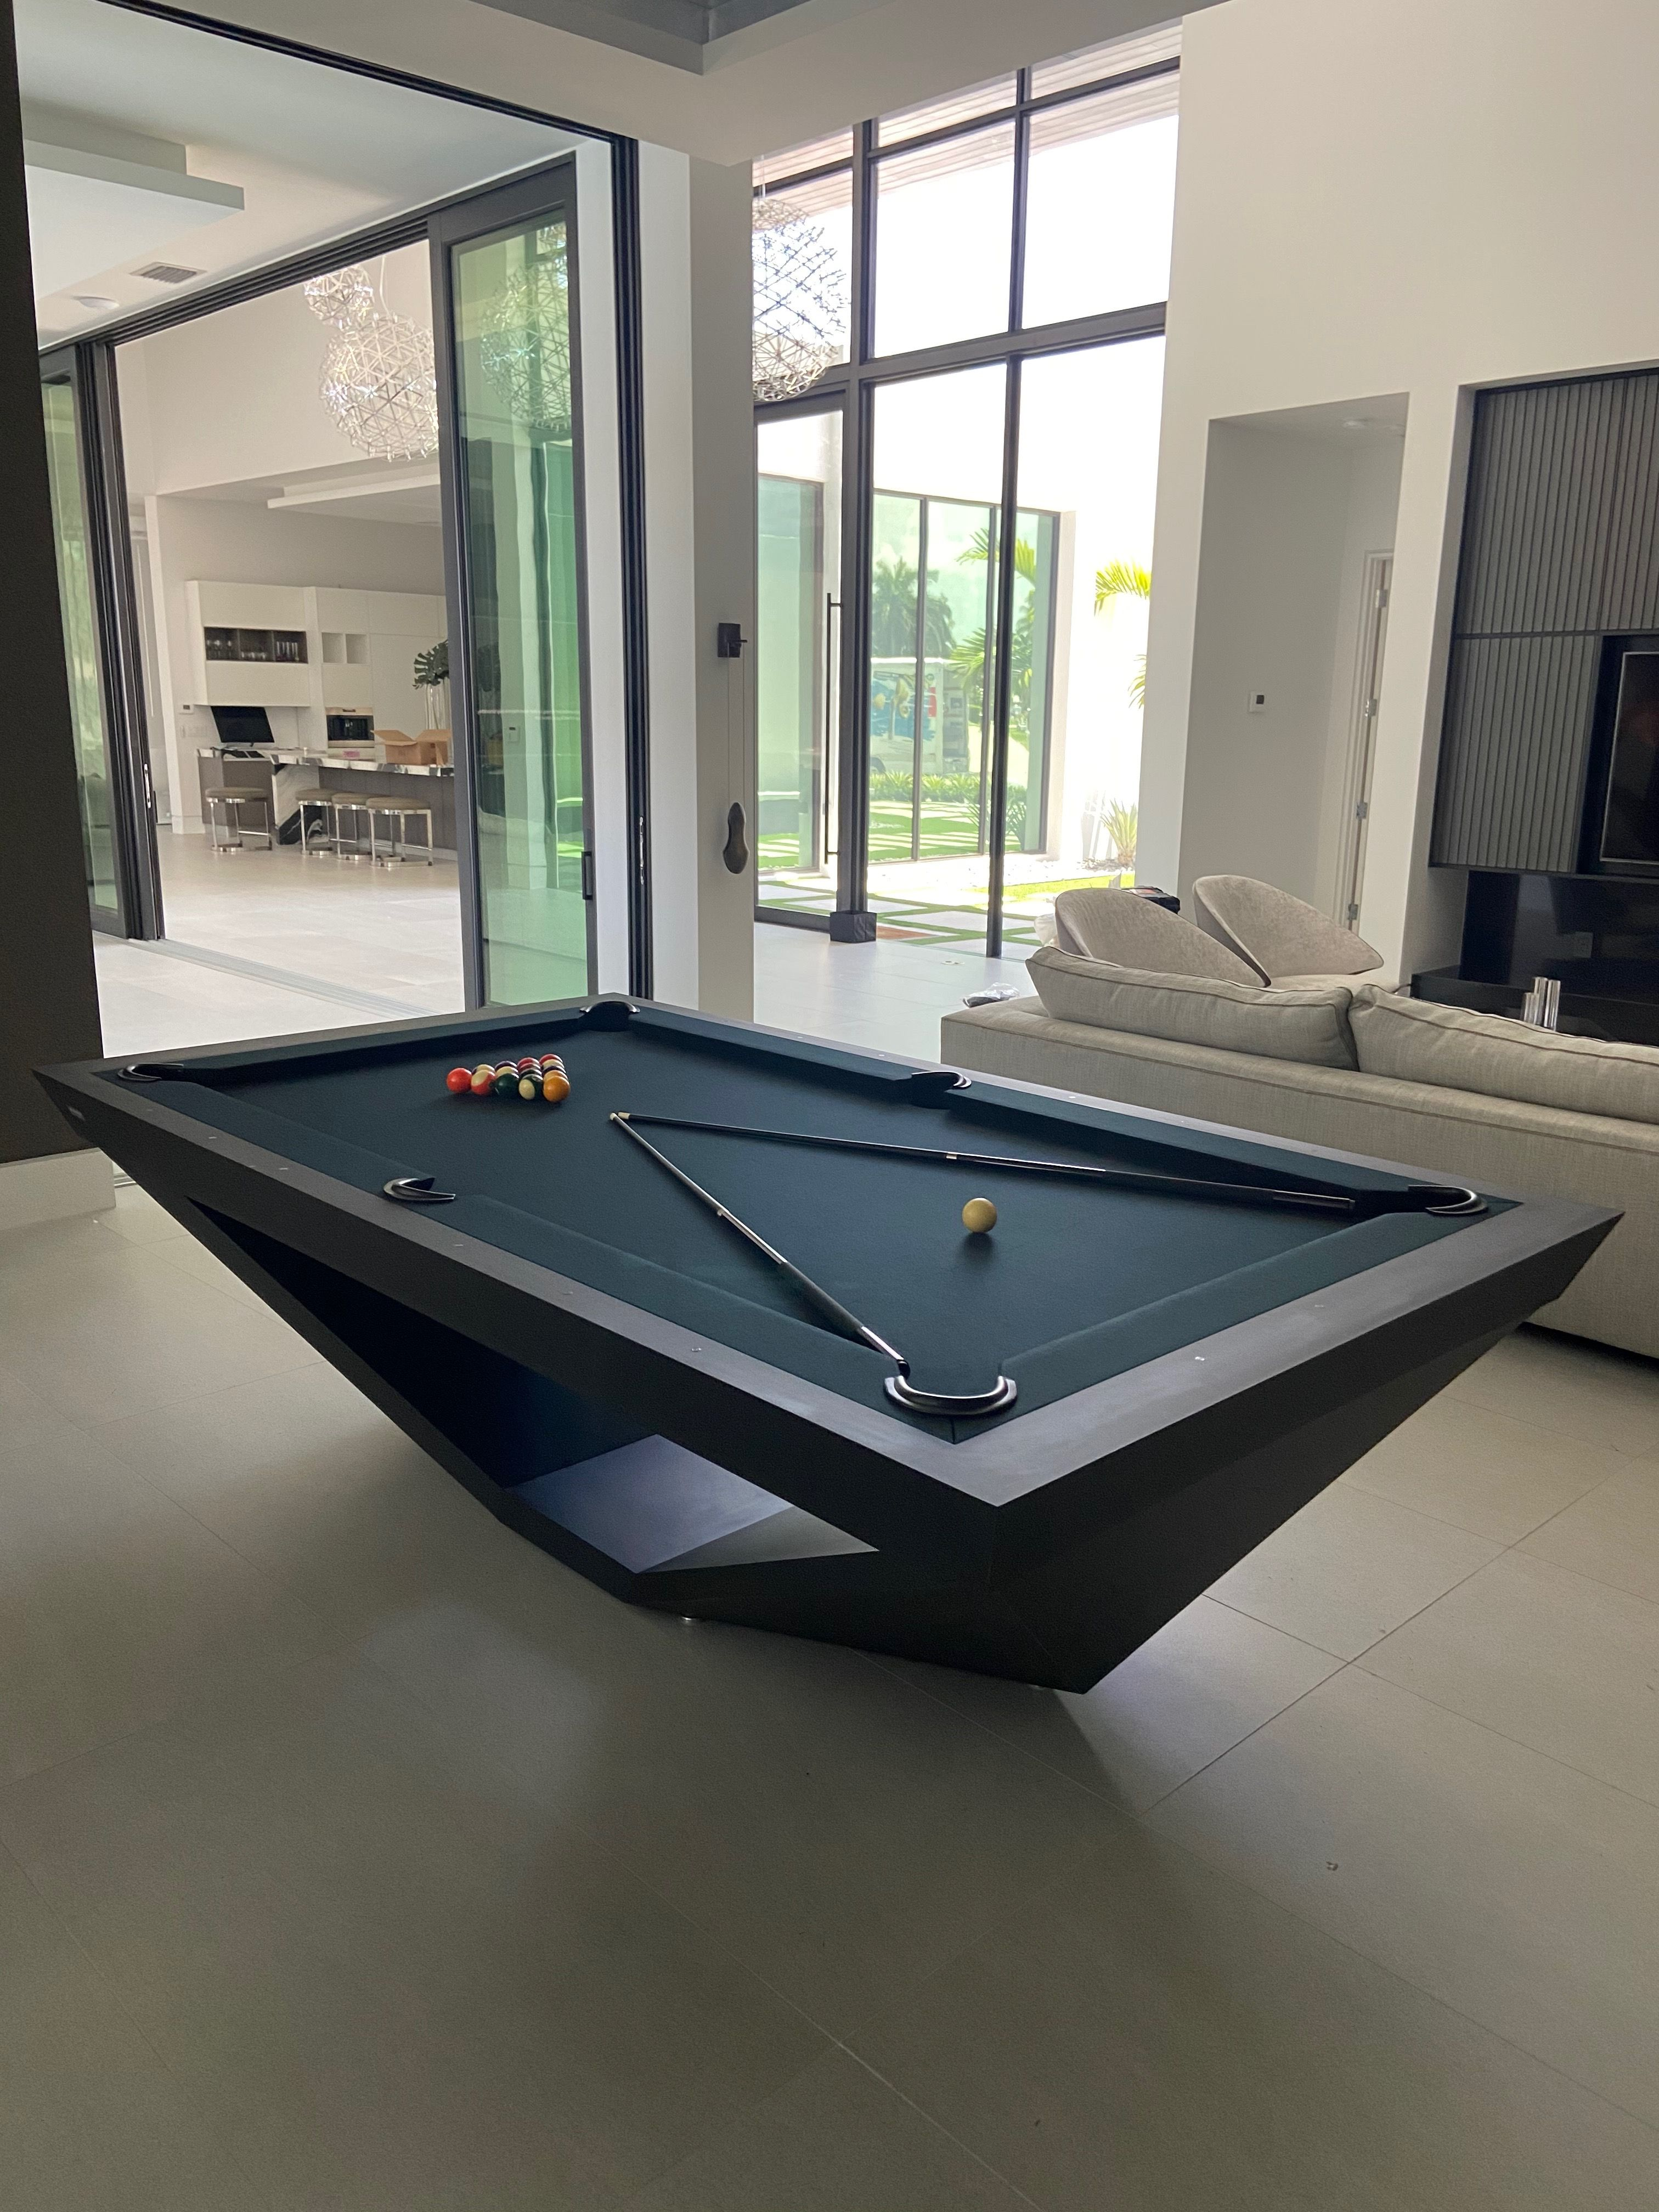 Drawing Influence From The Stealth Bomber Aircraft 11 Ravens Brings A Model That Is Precision Engineered And Uncompr In 2020 Modern Pool Table Modern Pools Pool Table